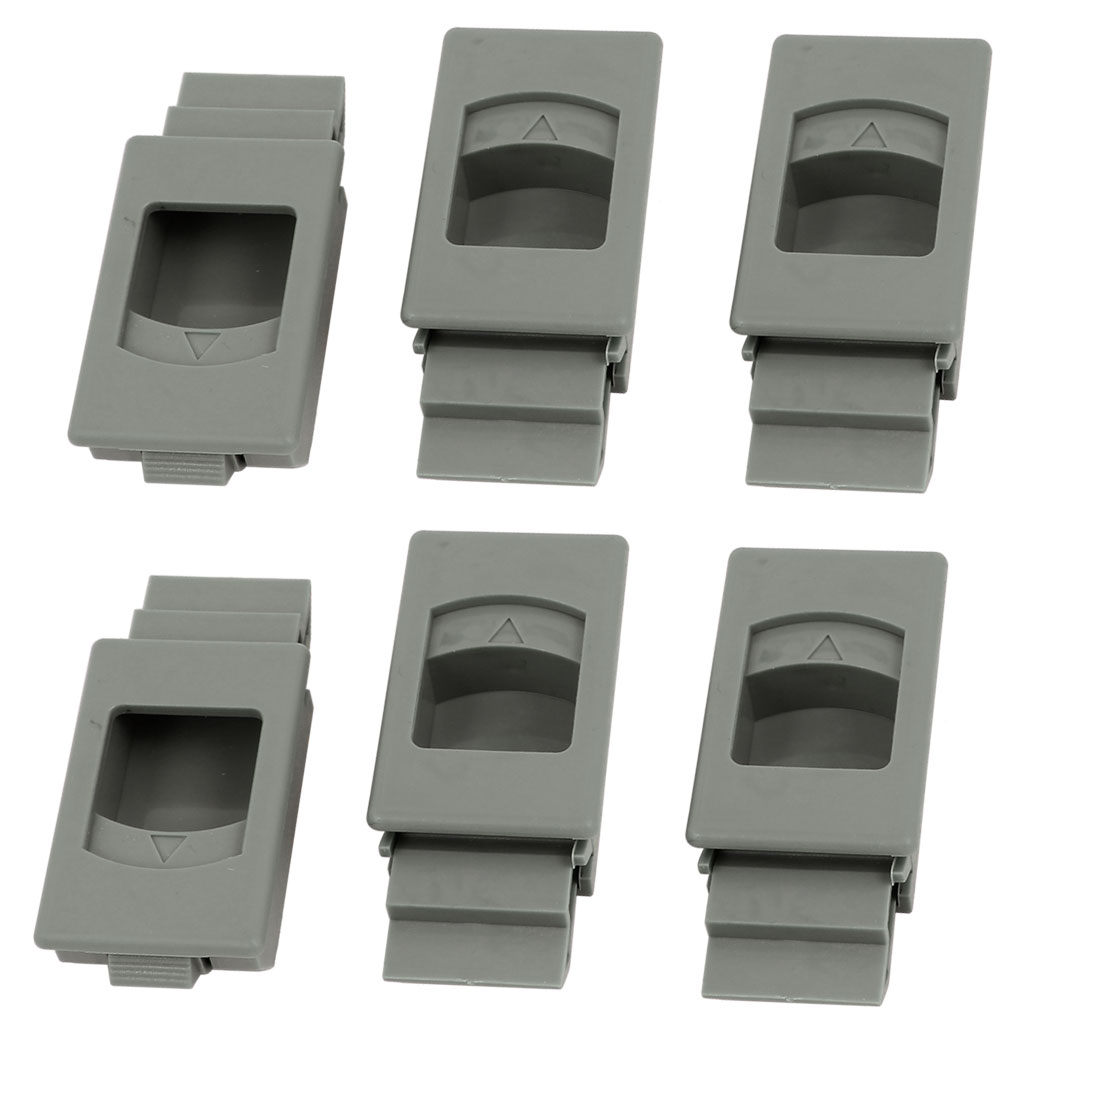 Window Door Inside Pull Rectangular Plastic Slide Latch Fittings Gray 6pcs